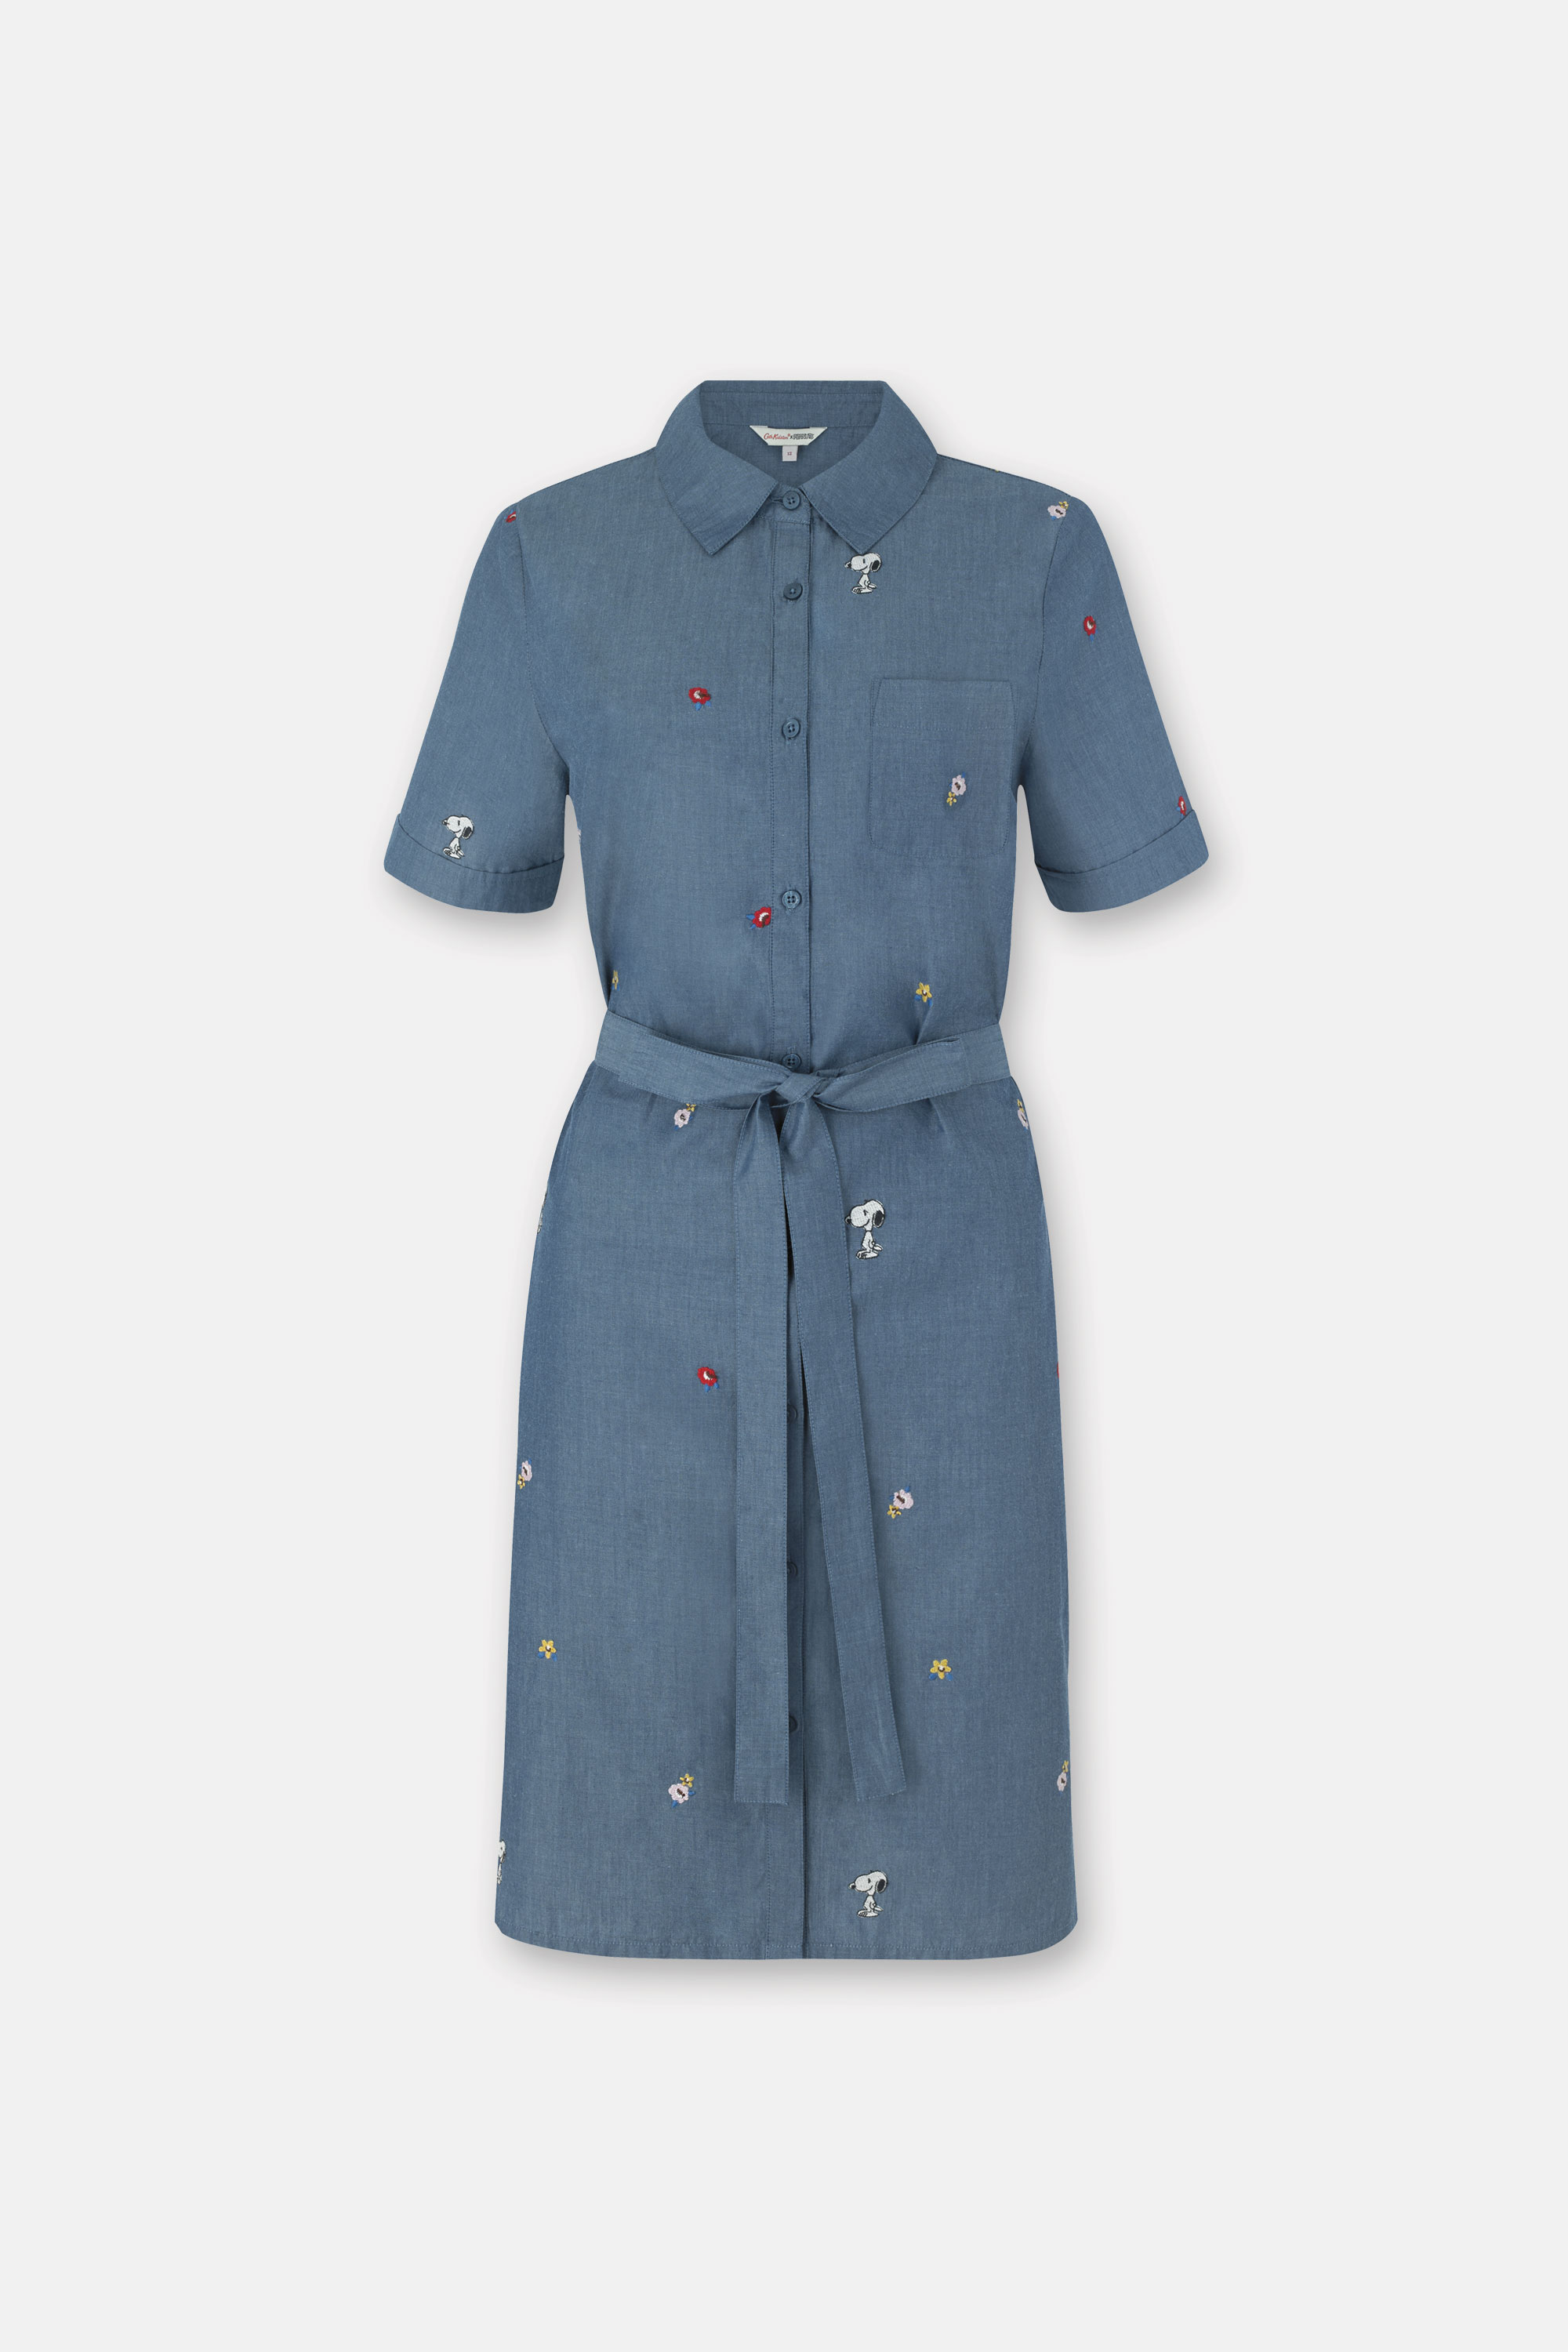 Cath Kidston Snoopy Kingswood Spaced Dress in Chambray, 100% Cotton, 8